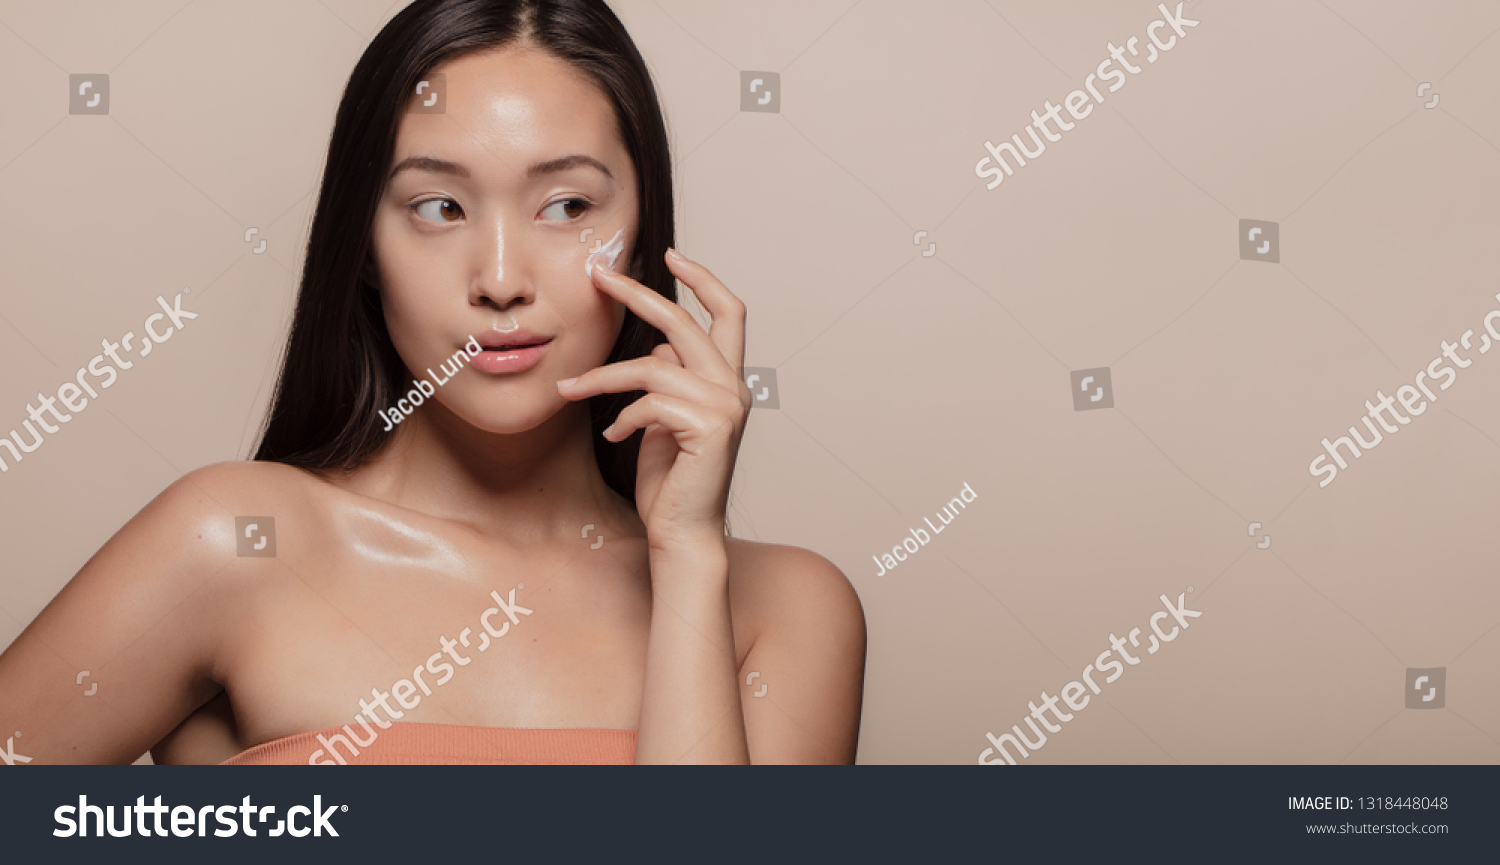 Young Korean woman applying moisturizer to her face over beige background. Young woman with cosmetic cream on a cheek and looking away. #1318448048